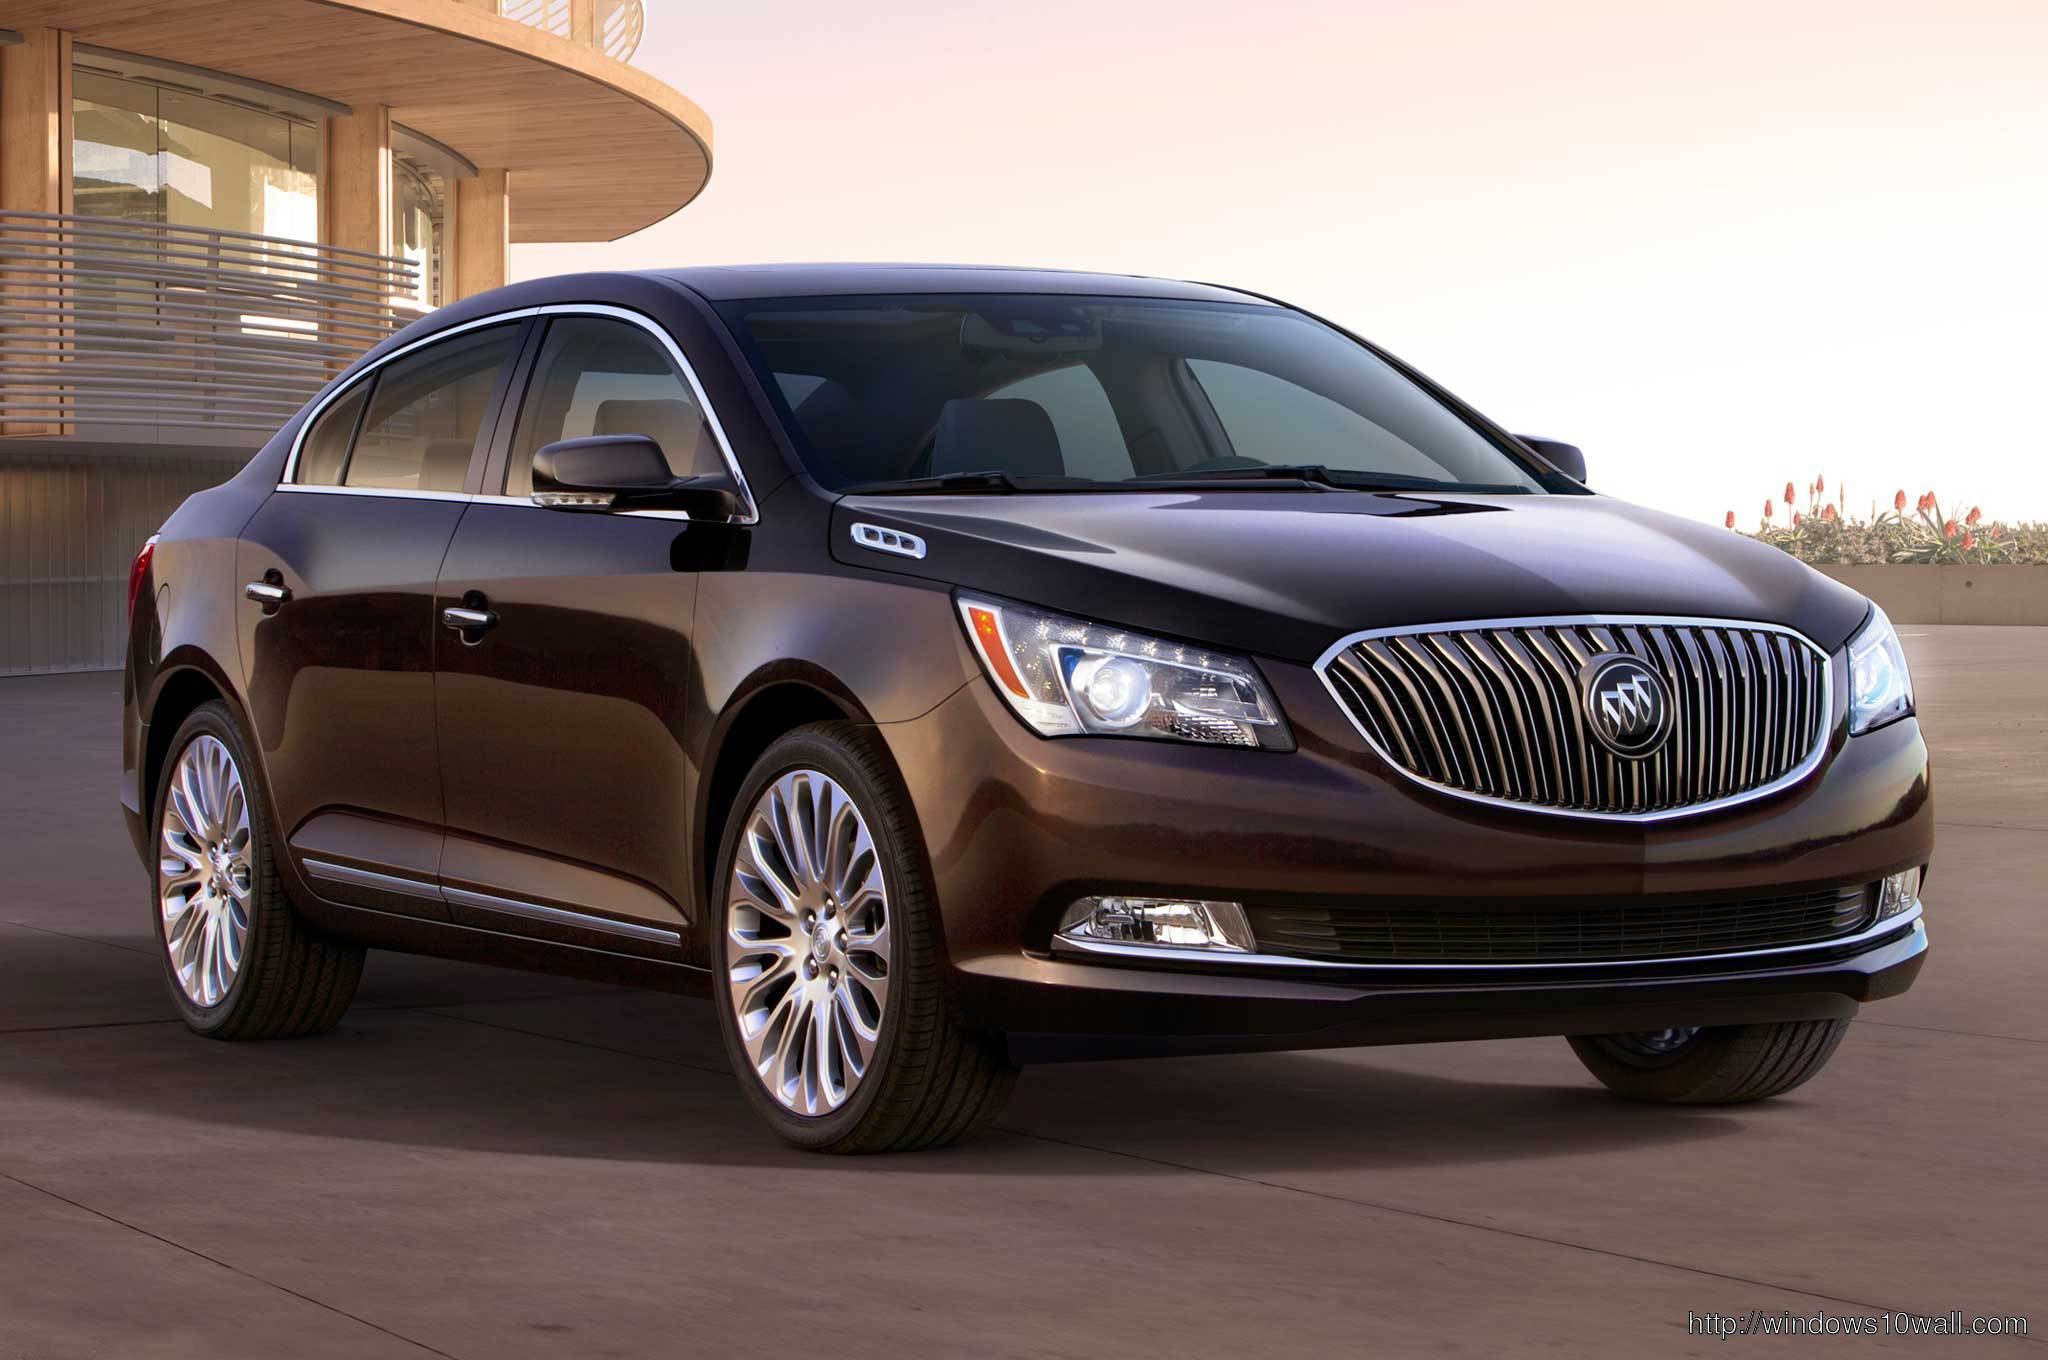 2014 Buick LaCrosse front side view Wallpaper